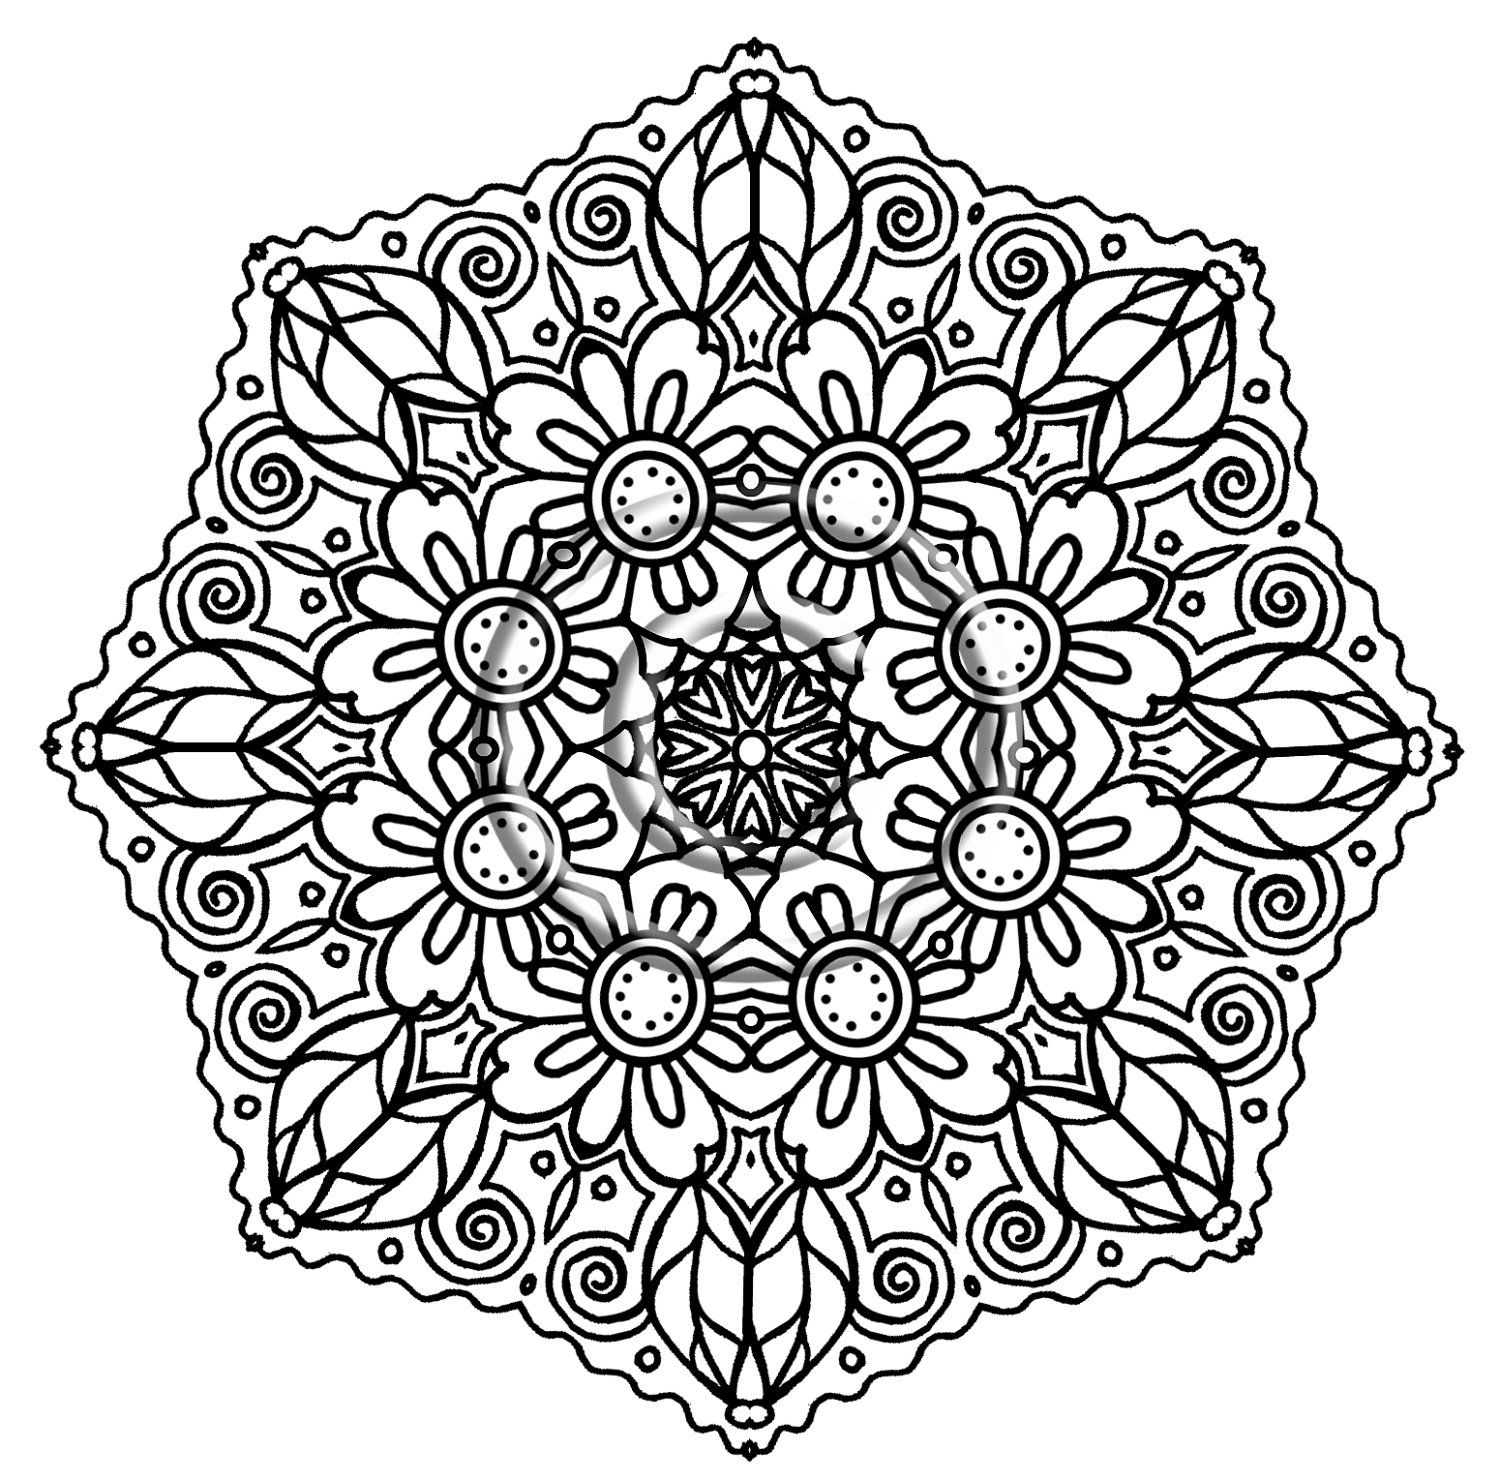 adult coloring pages intricate intricate mandala coloring pages design mandalas picture